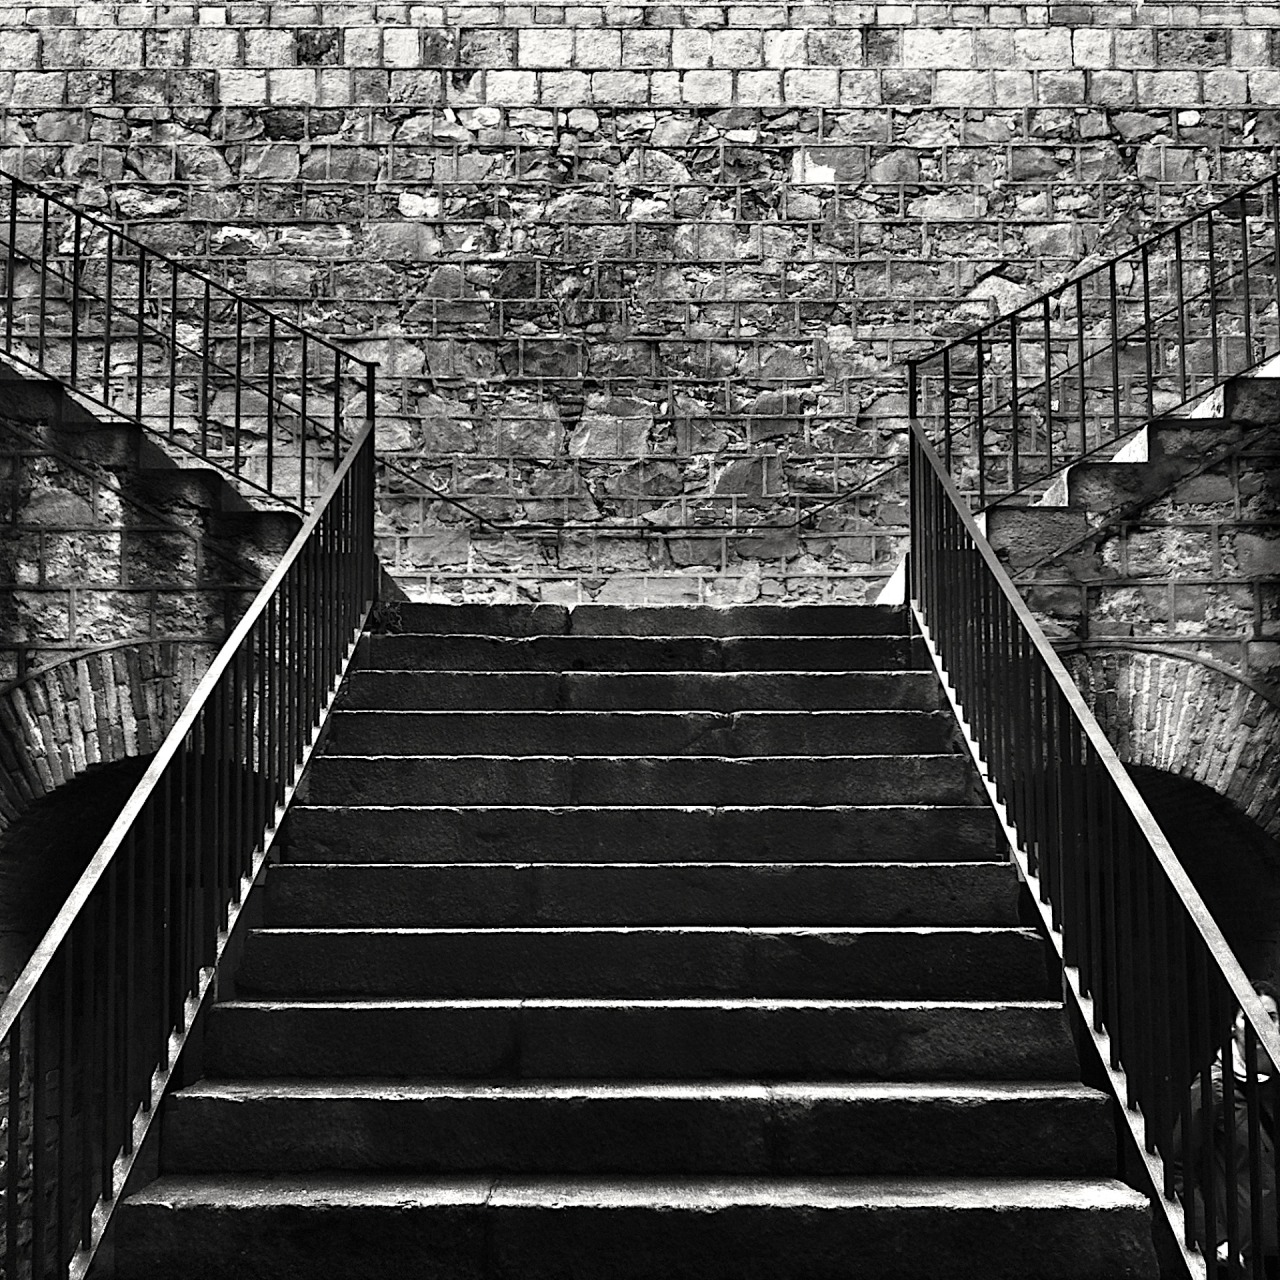 Black and White photo of stairway